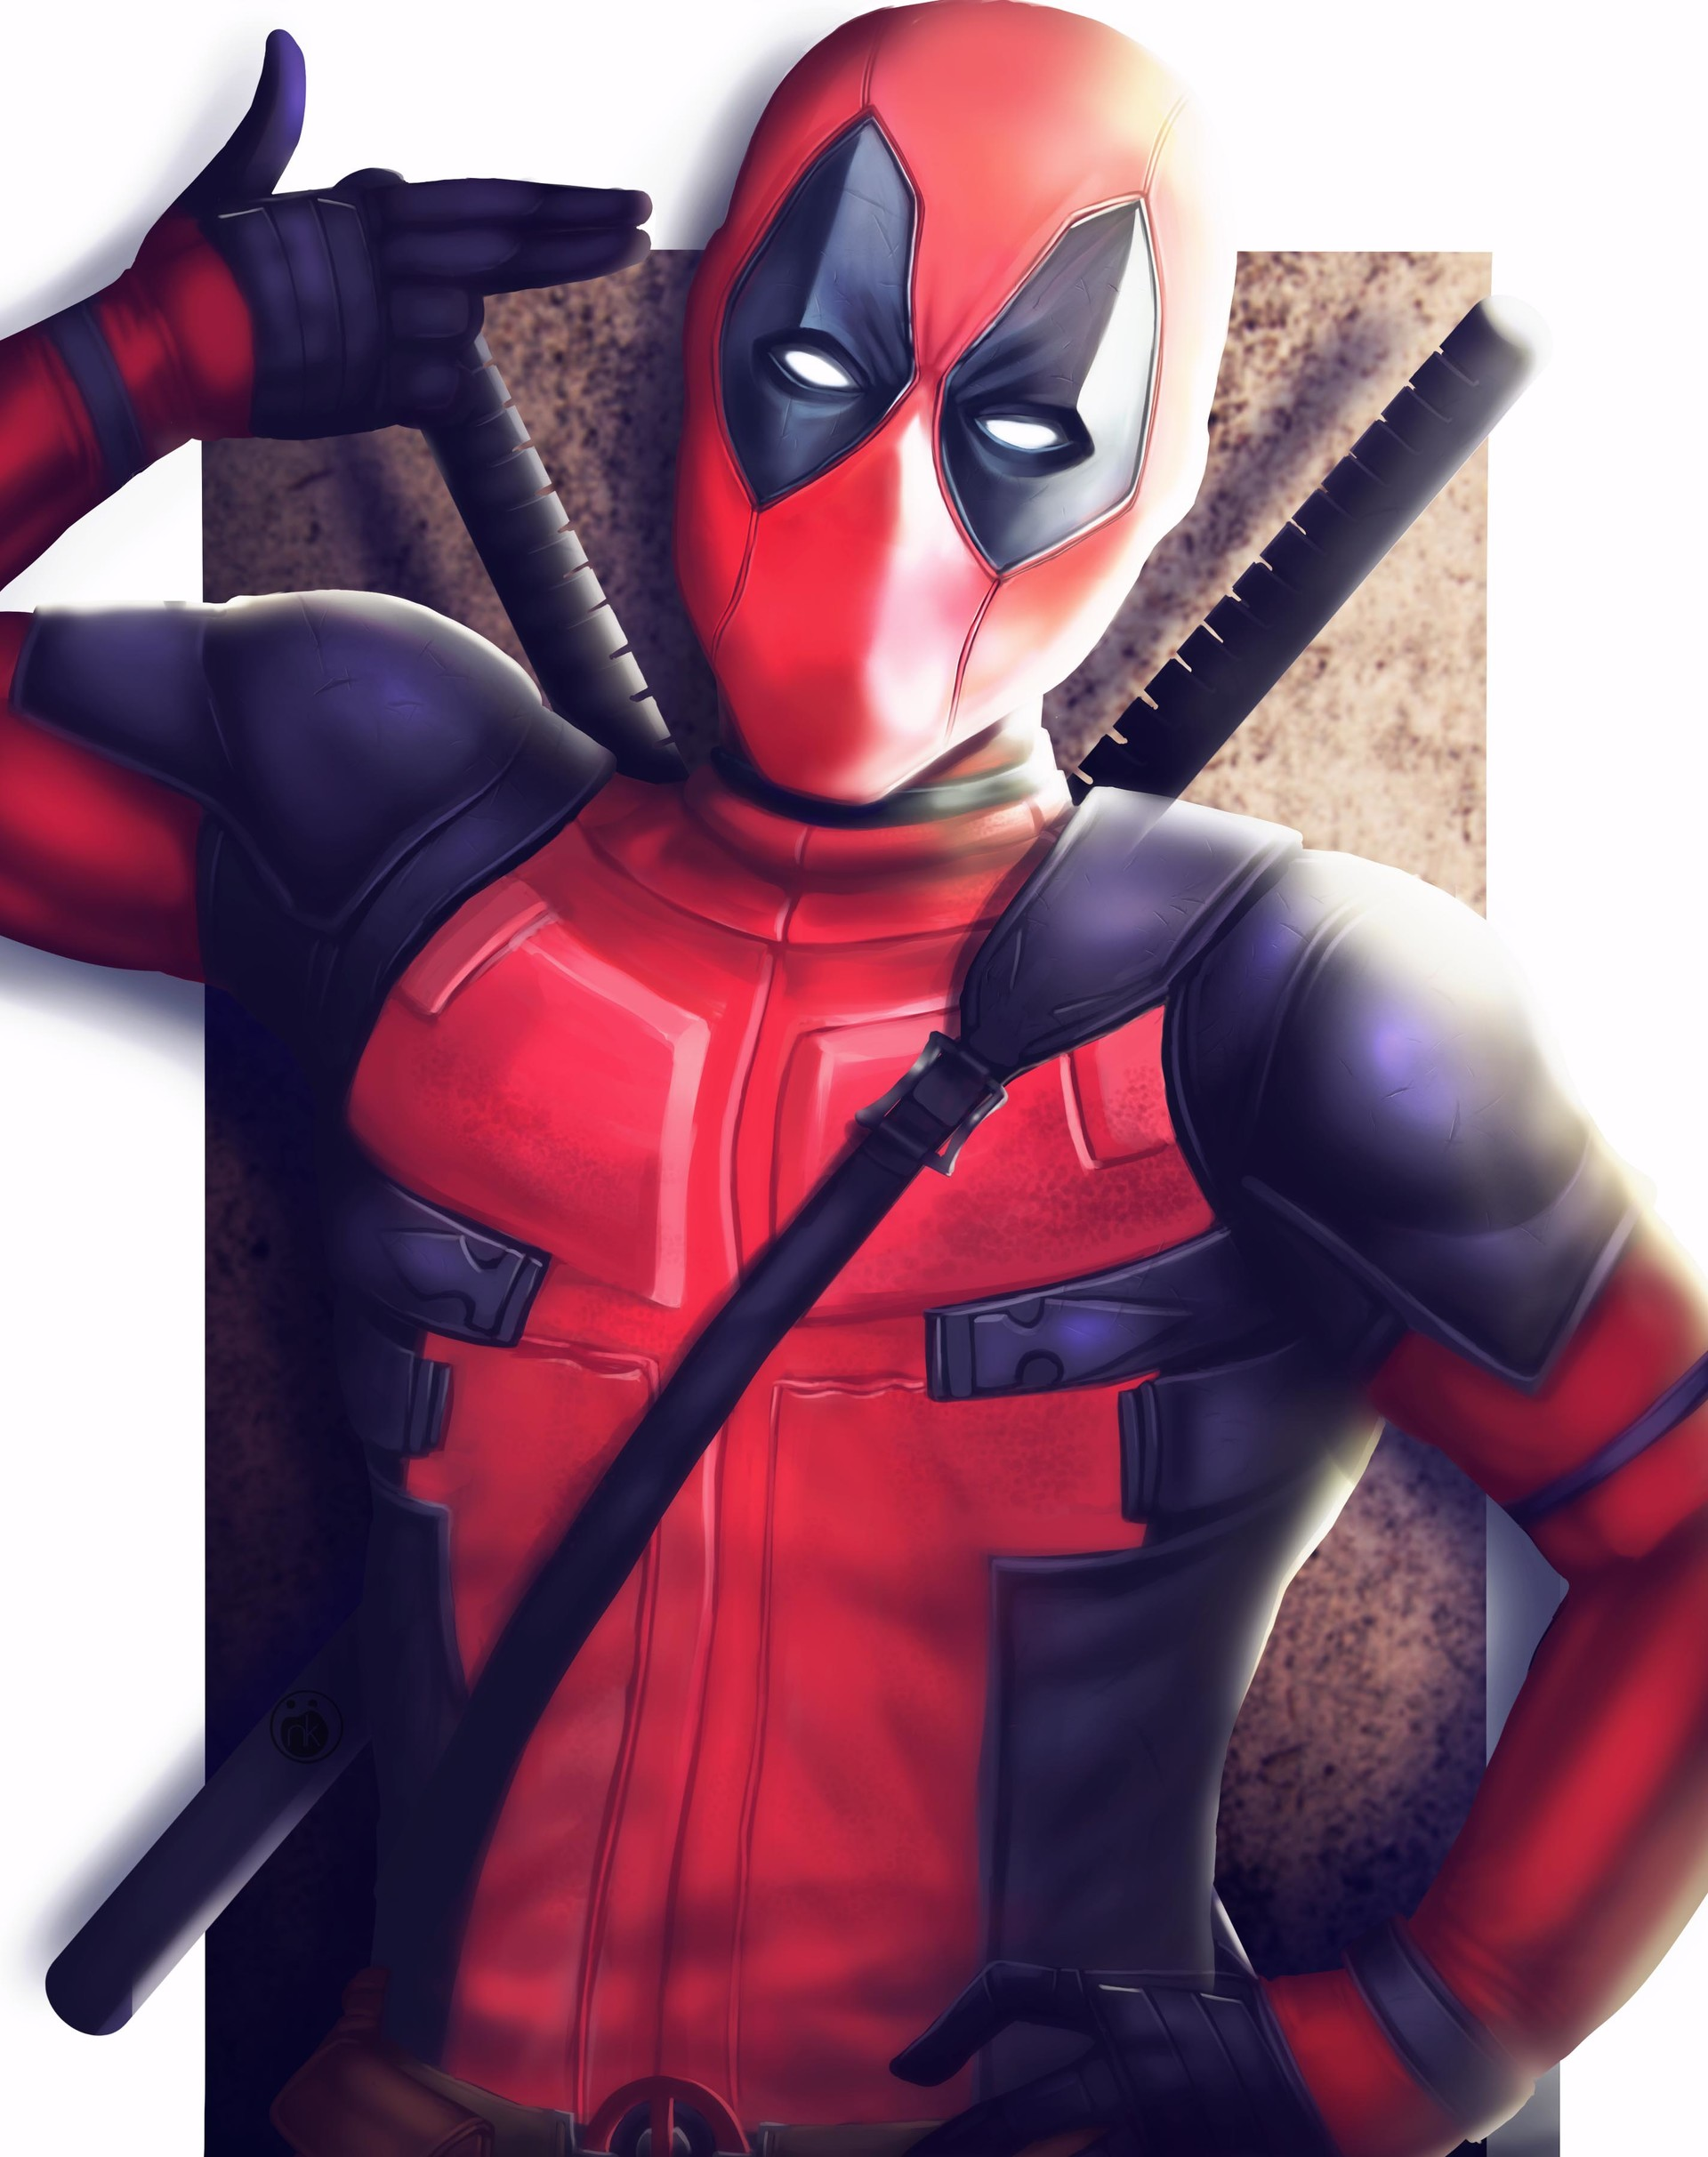 Kai ussin deadpool 9 5x12